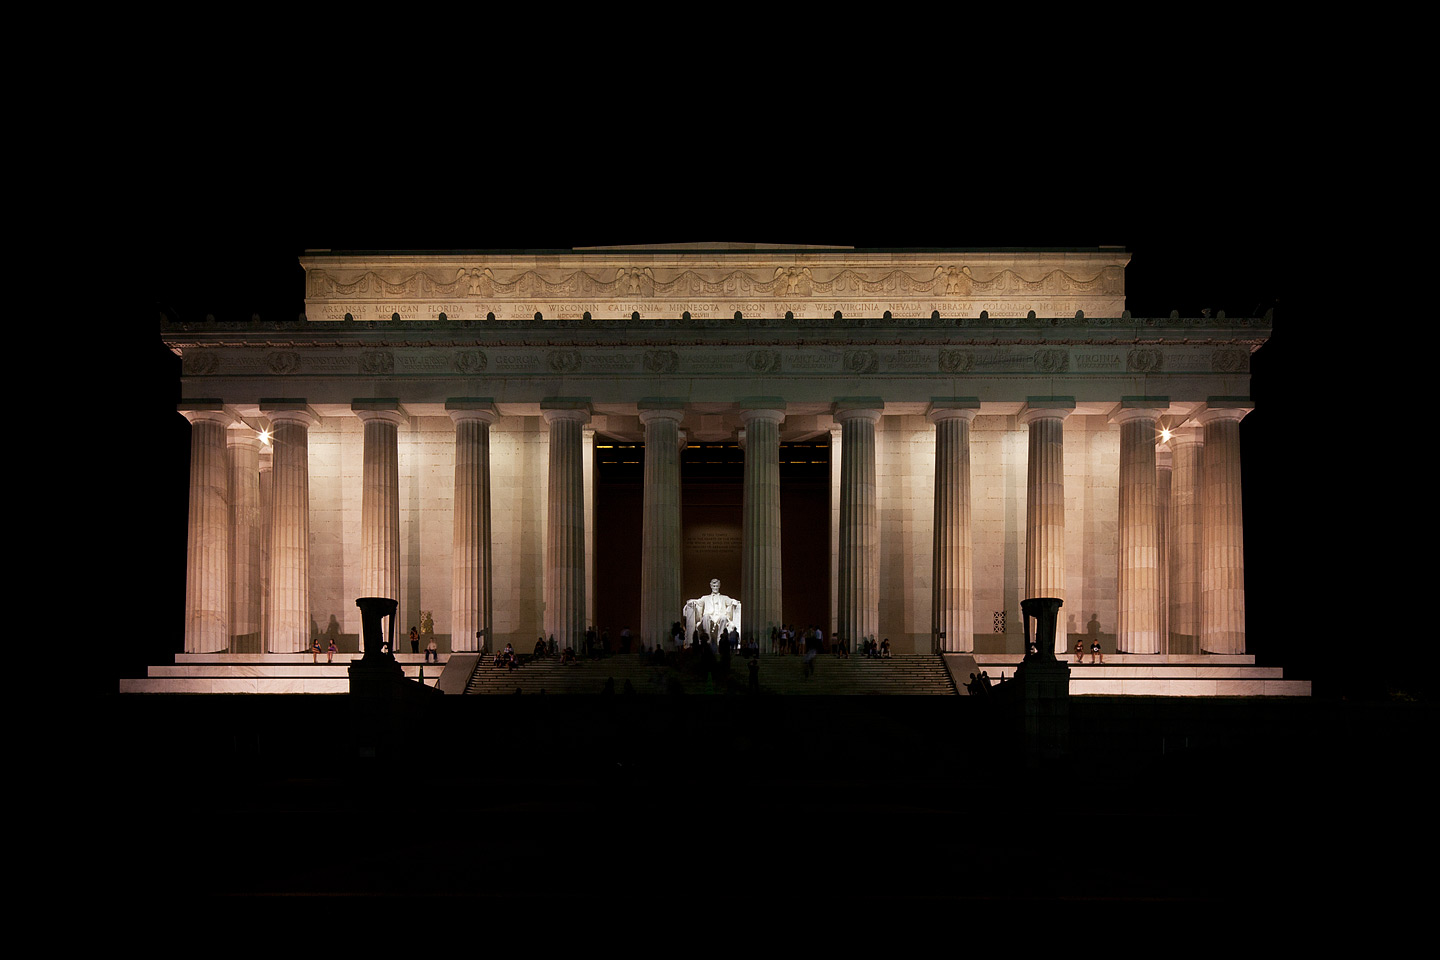 a front view of the lincoln memorial in washington dc photographed at night by Jacob Rosenfeld